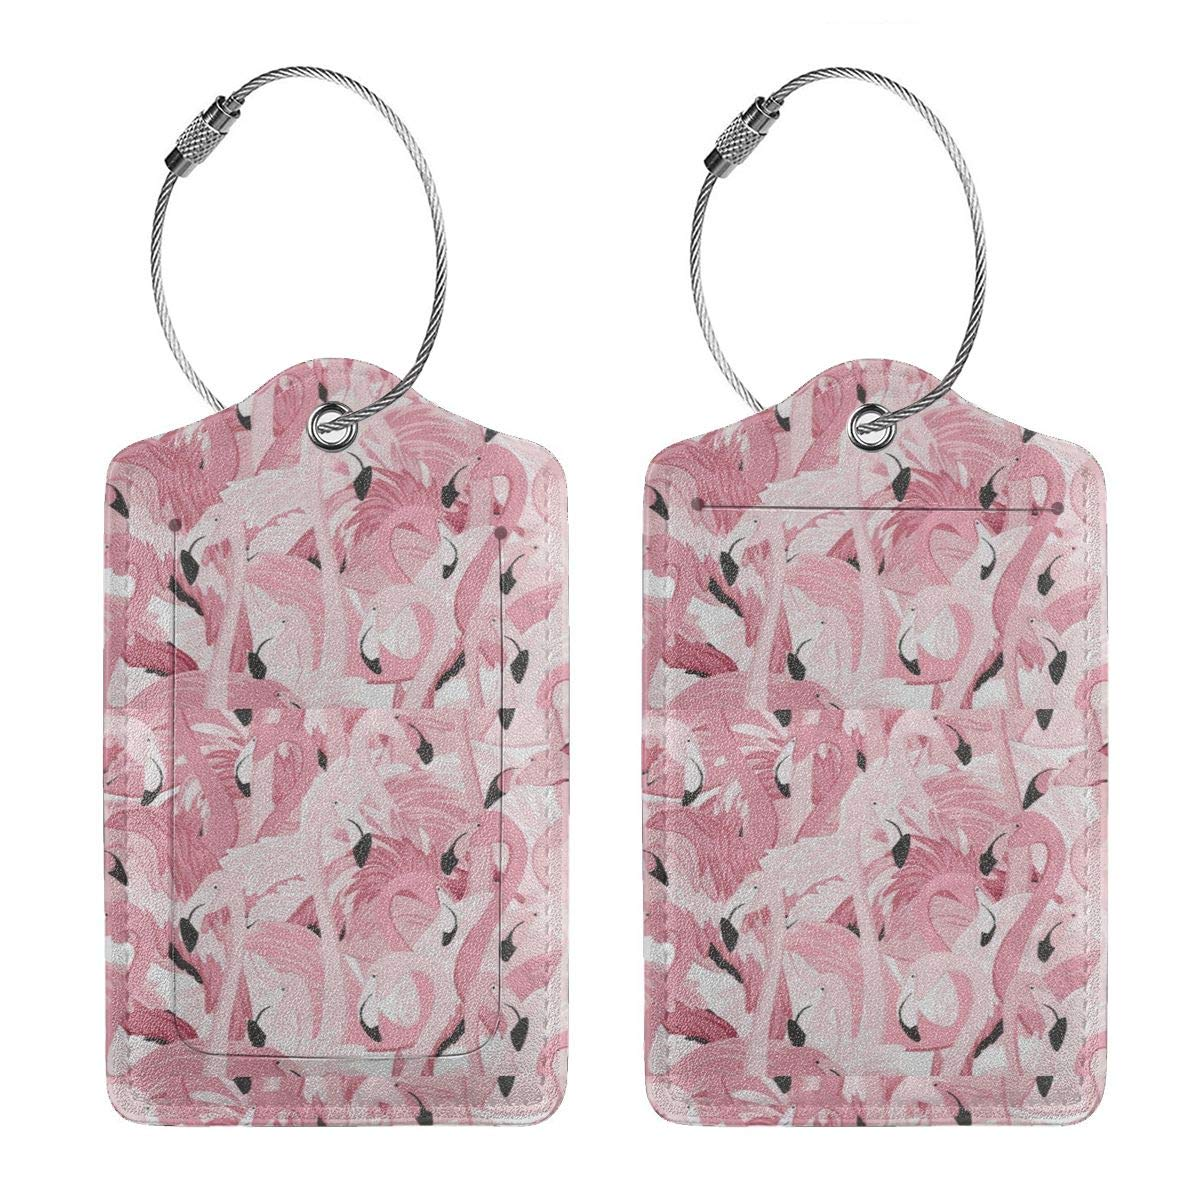 Pink Flamingos Leather Luggage Tags Personalized Address Card With Privacy Flap